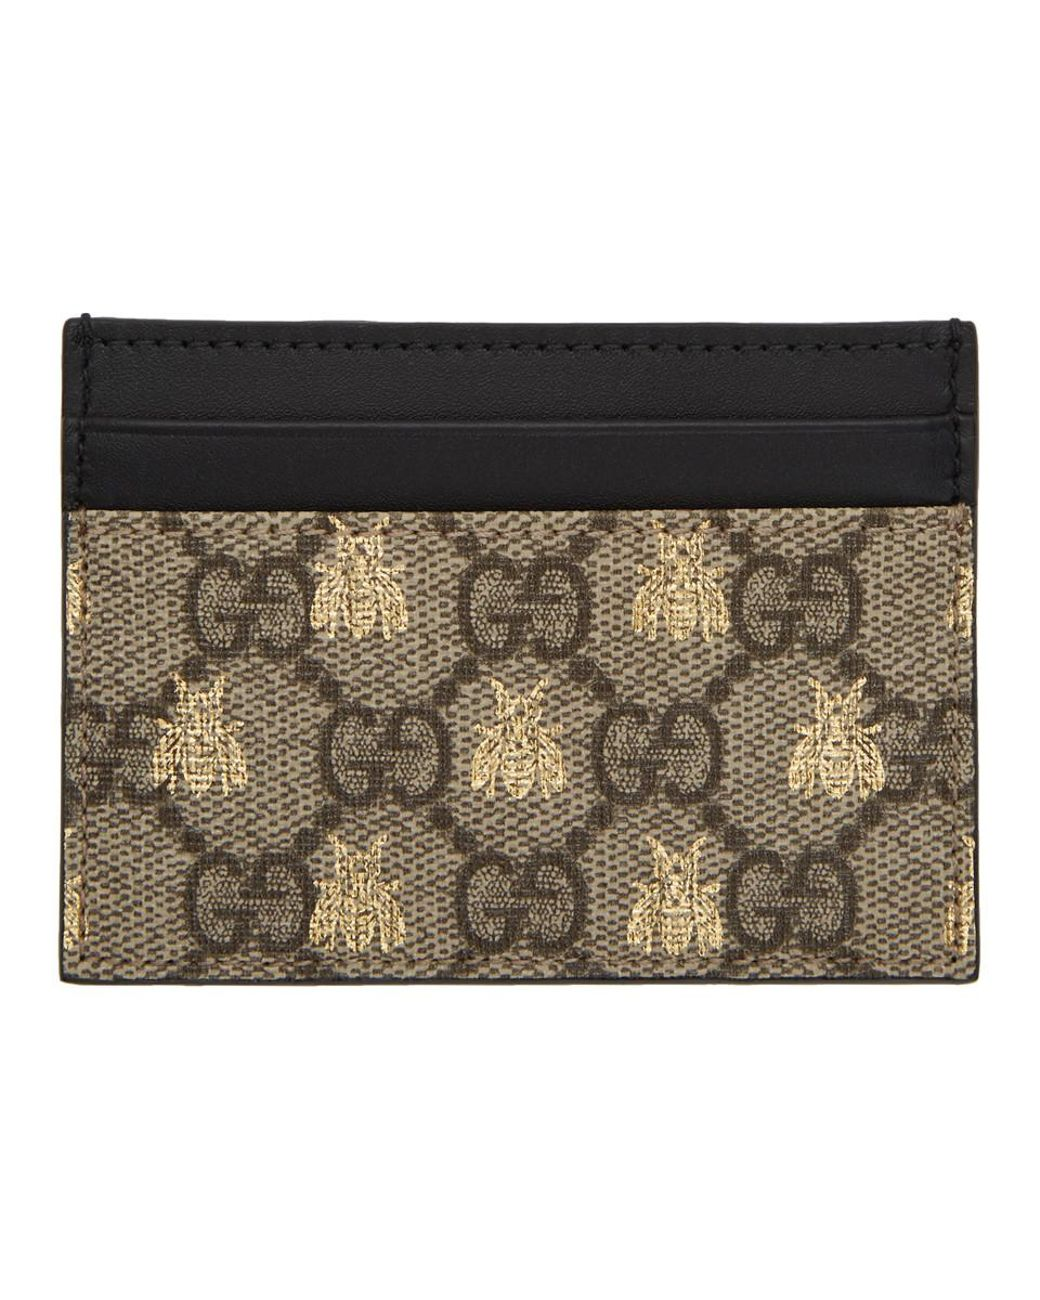 204e9043dad1 Gucci Beige GG Supreme Bees Card Holder in Natural - Lyst